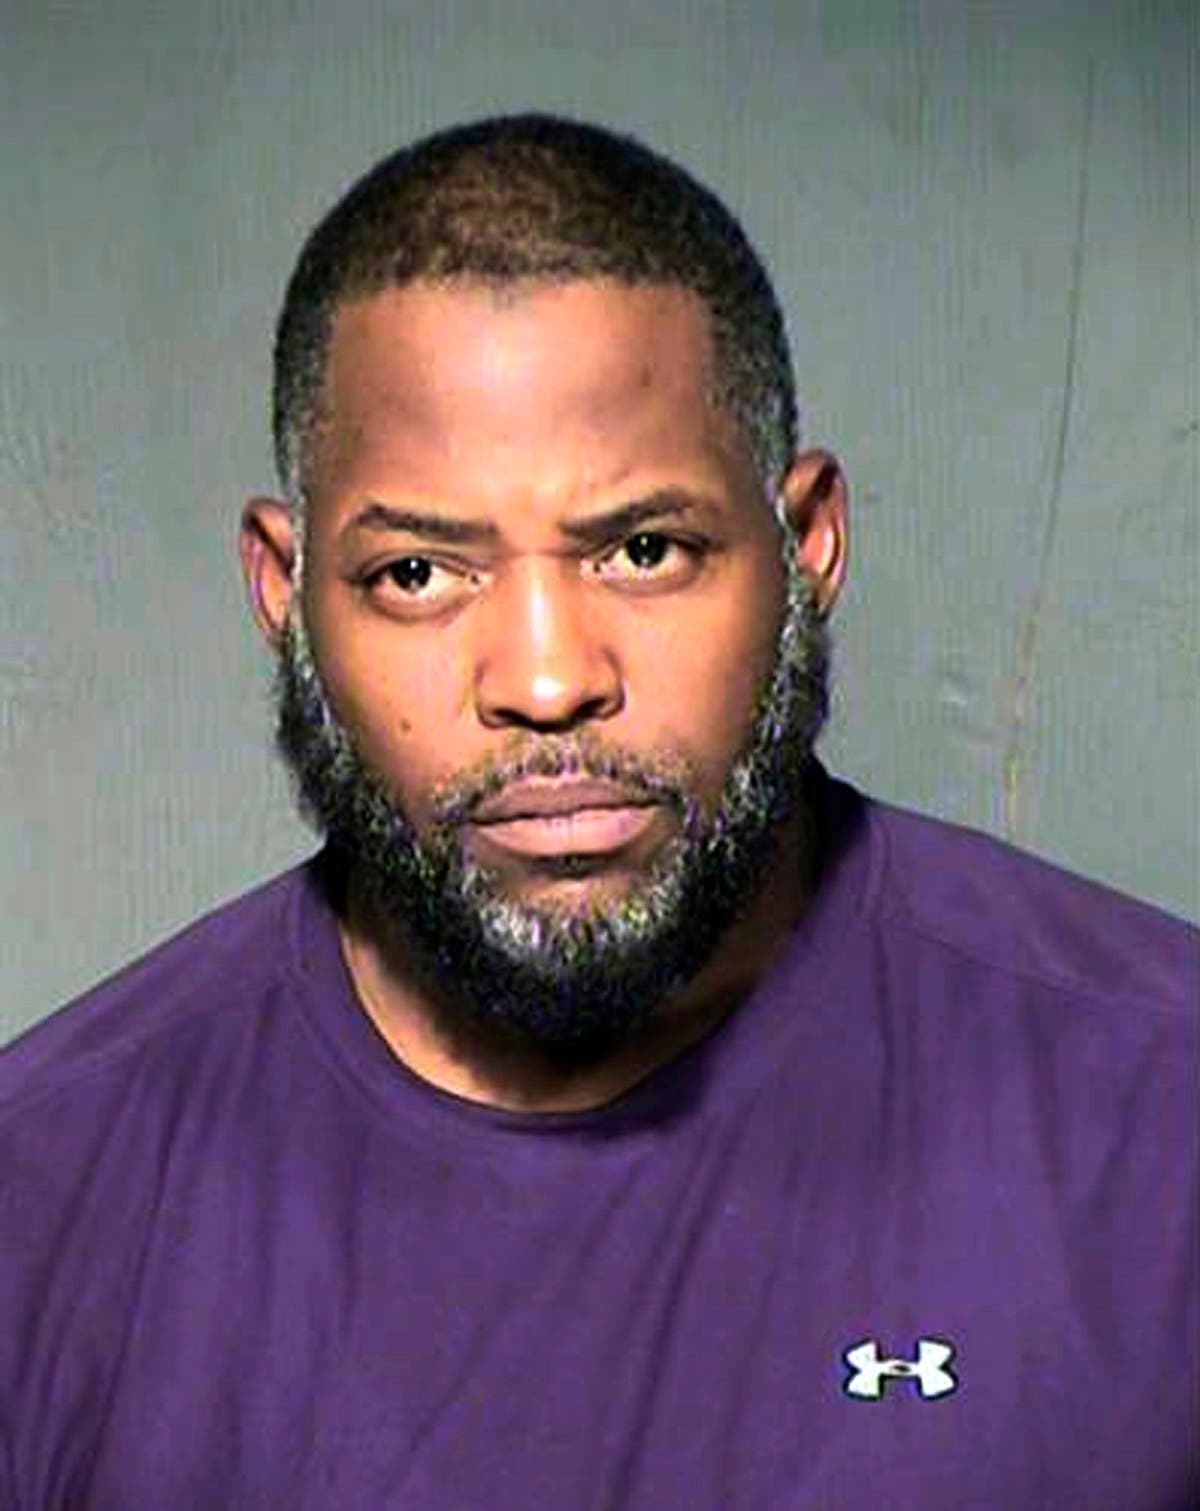 No sentence reduction for man convicted in 2015 Texas attack